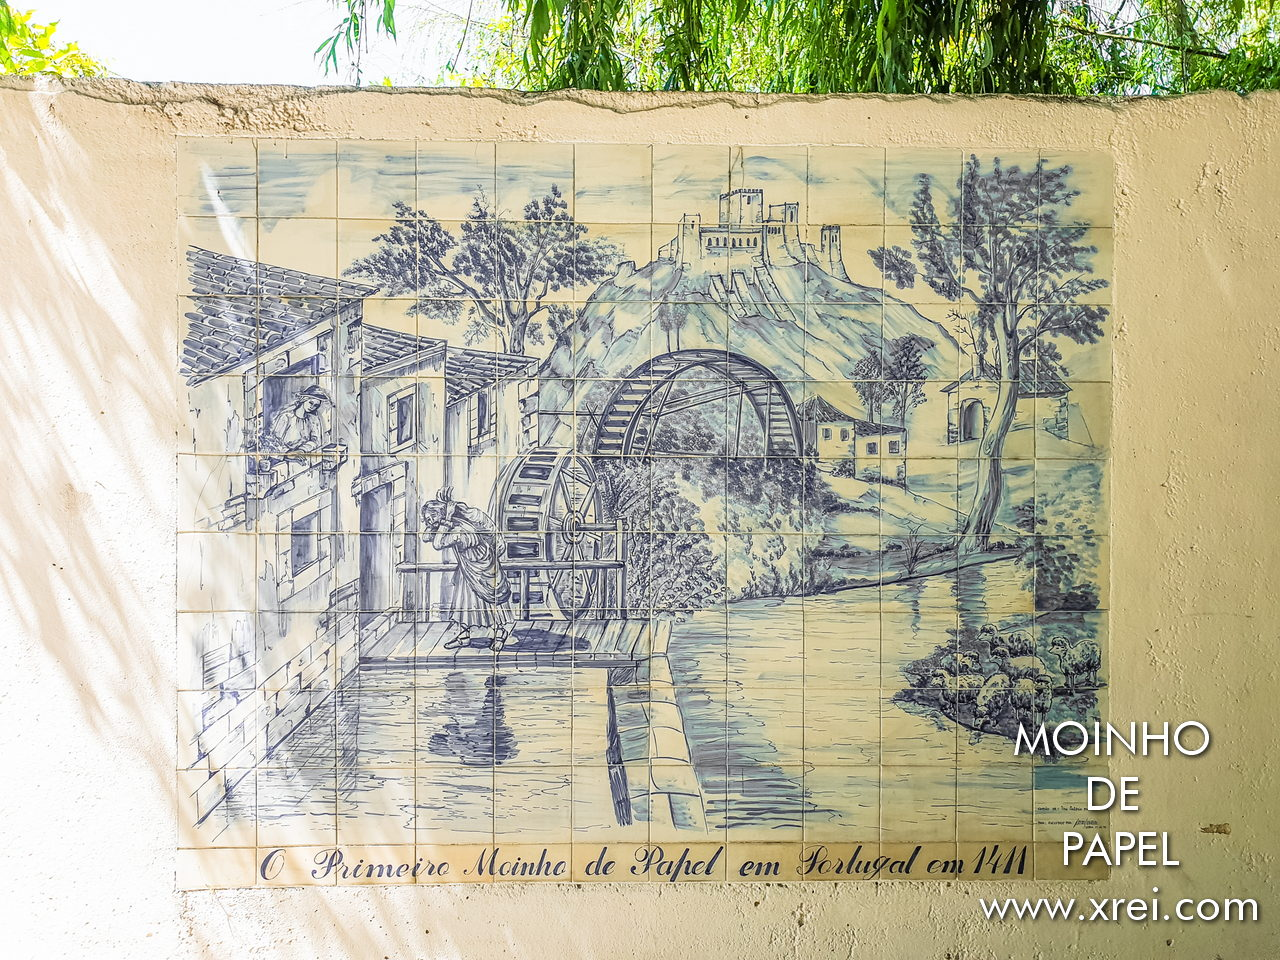 Paper Mill represented on a hand painted tile panel